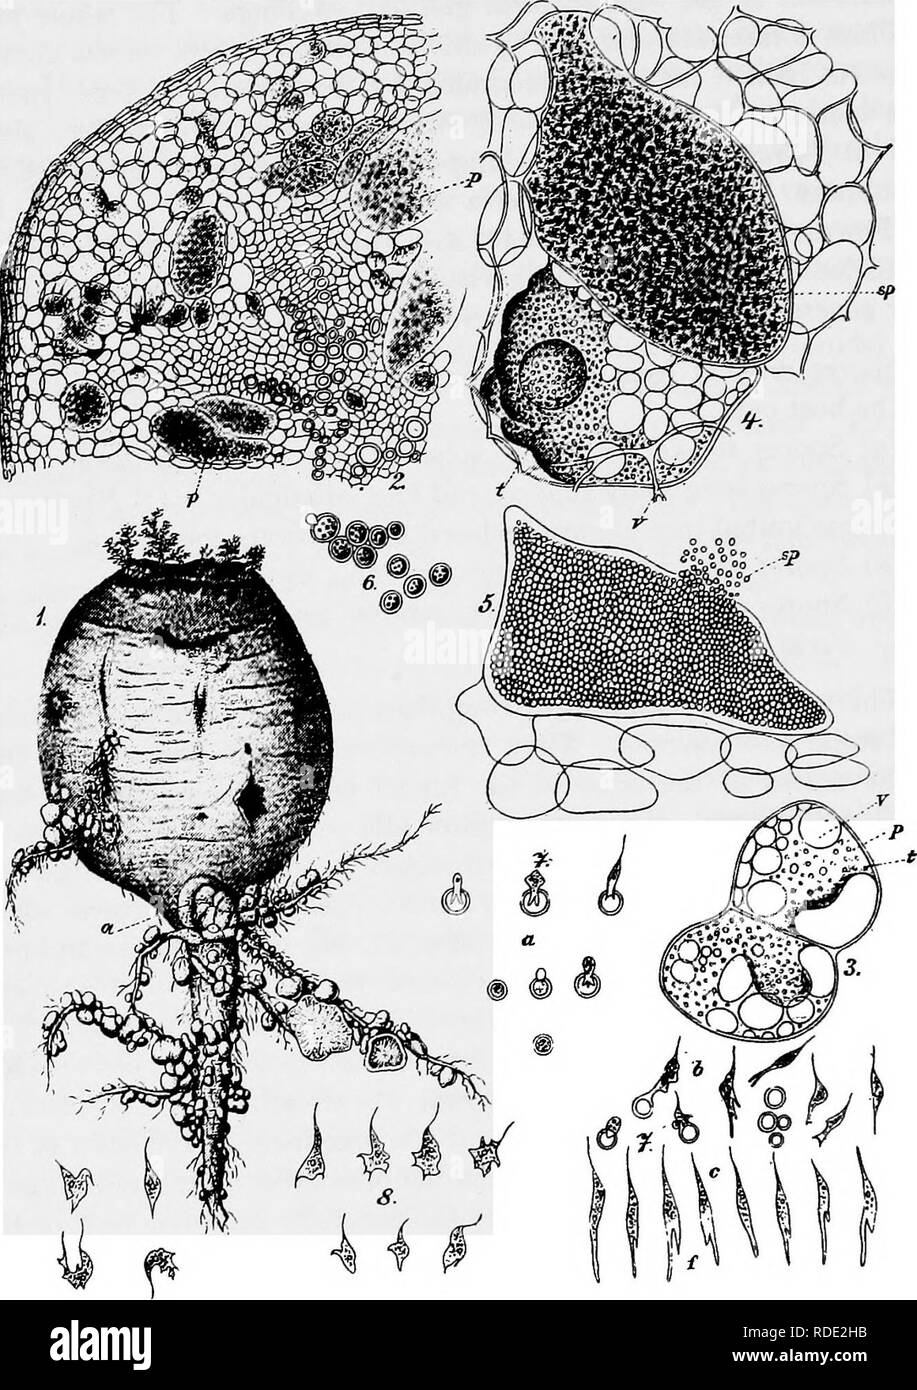 . A text-book of mycology and plant pathology . Plant diseases; Fungi in agriculture; Plant diseases; Fungi. lO MYCOLOGY. Fig. I.—Club-root of cabbage, Plasmodiophora brassica. i, Turnip with club- root; 2, section of cabbage root with parenchyma cells filled with slime mould; 3, isolated parenchyma cell, (») vacuole, (0 oil-drops in Plasmodium, {p) Plasmodium; 4, lower cell with Plasmodium, upper cell with spores developing; 5, parenchyma cell with ripe spores; 6, isolated ripe spores; 7, germinating spores; 8, myxamoeba. (Figs. 2-8, cfter Woronin in Soraucr Ilandhuch dcr Pflanzenkrankheiten. - Stock Image